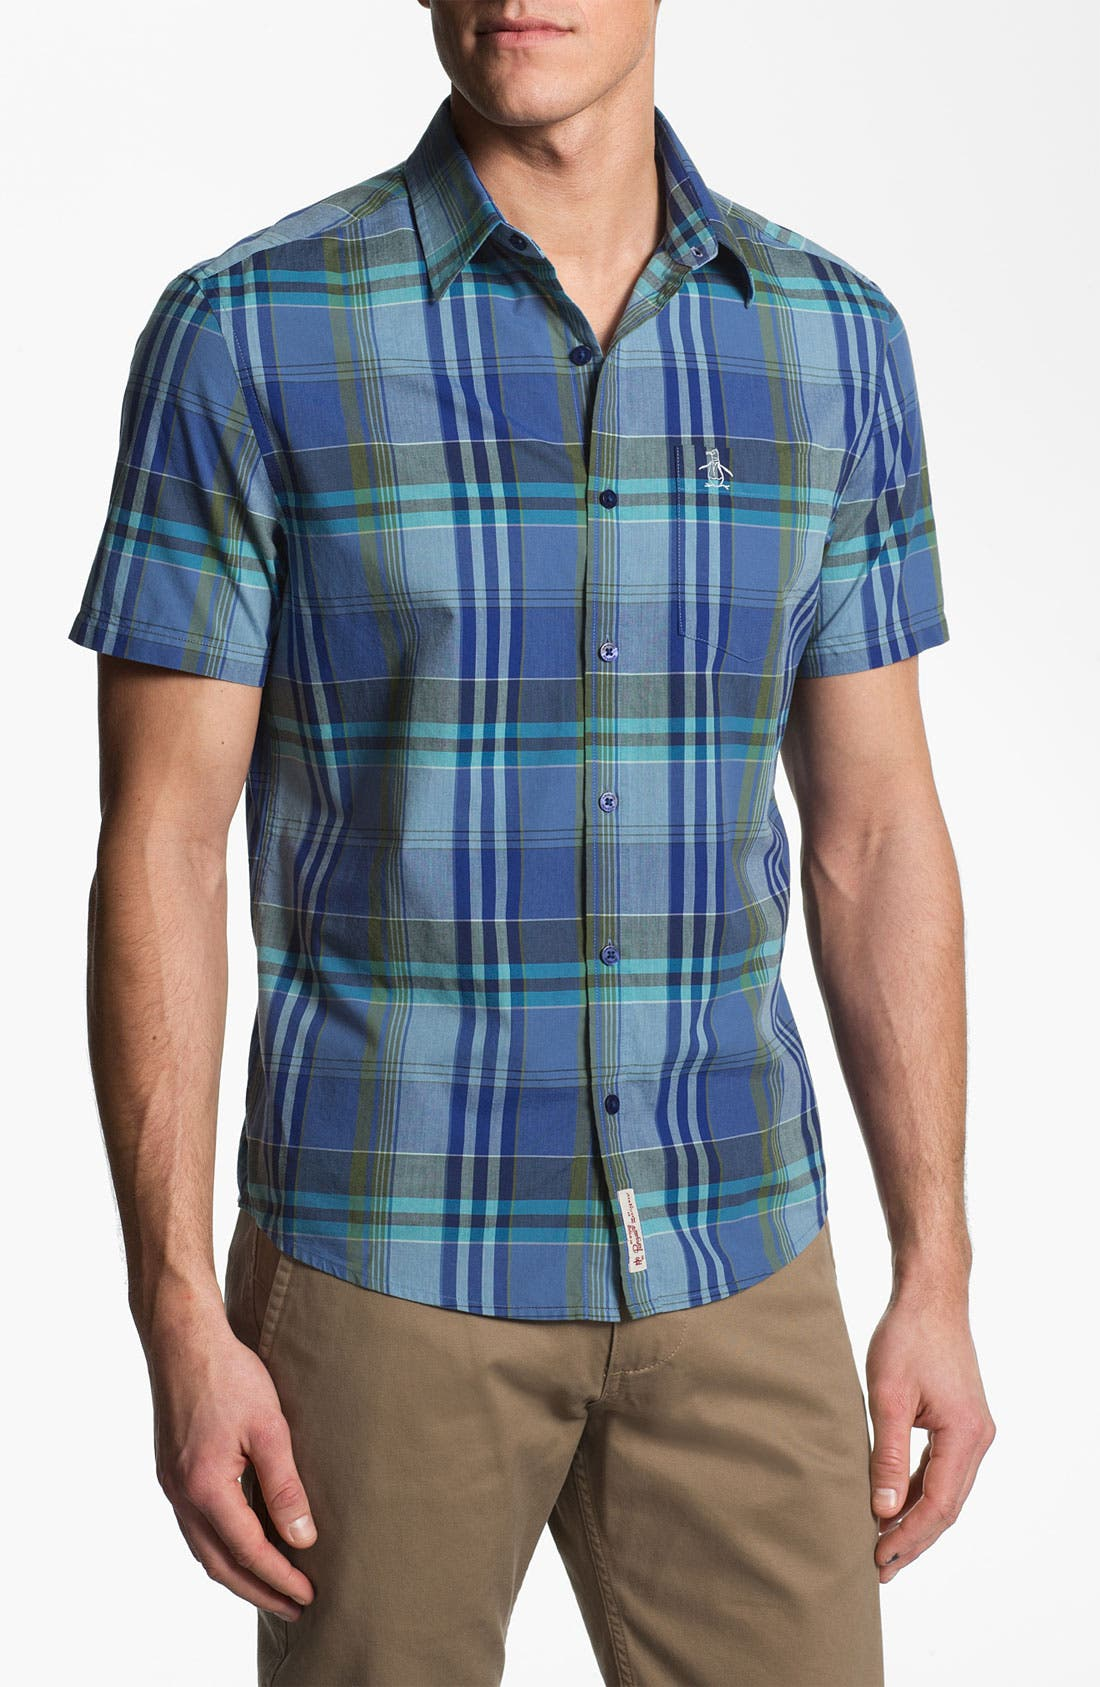 Main Image - Original Penguin Plaid Woven Shirt